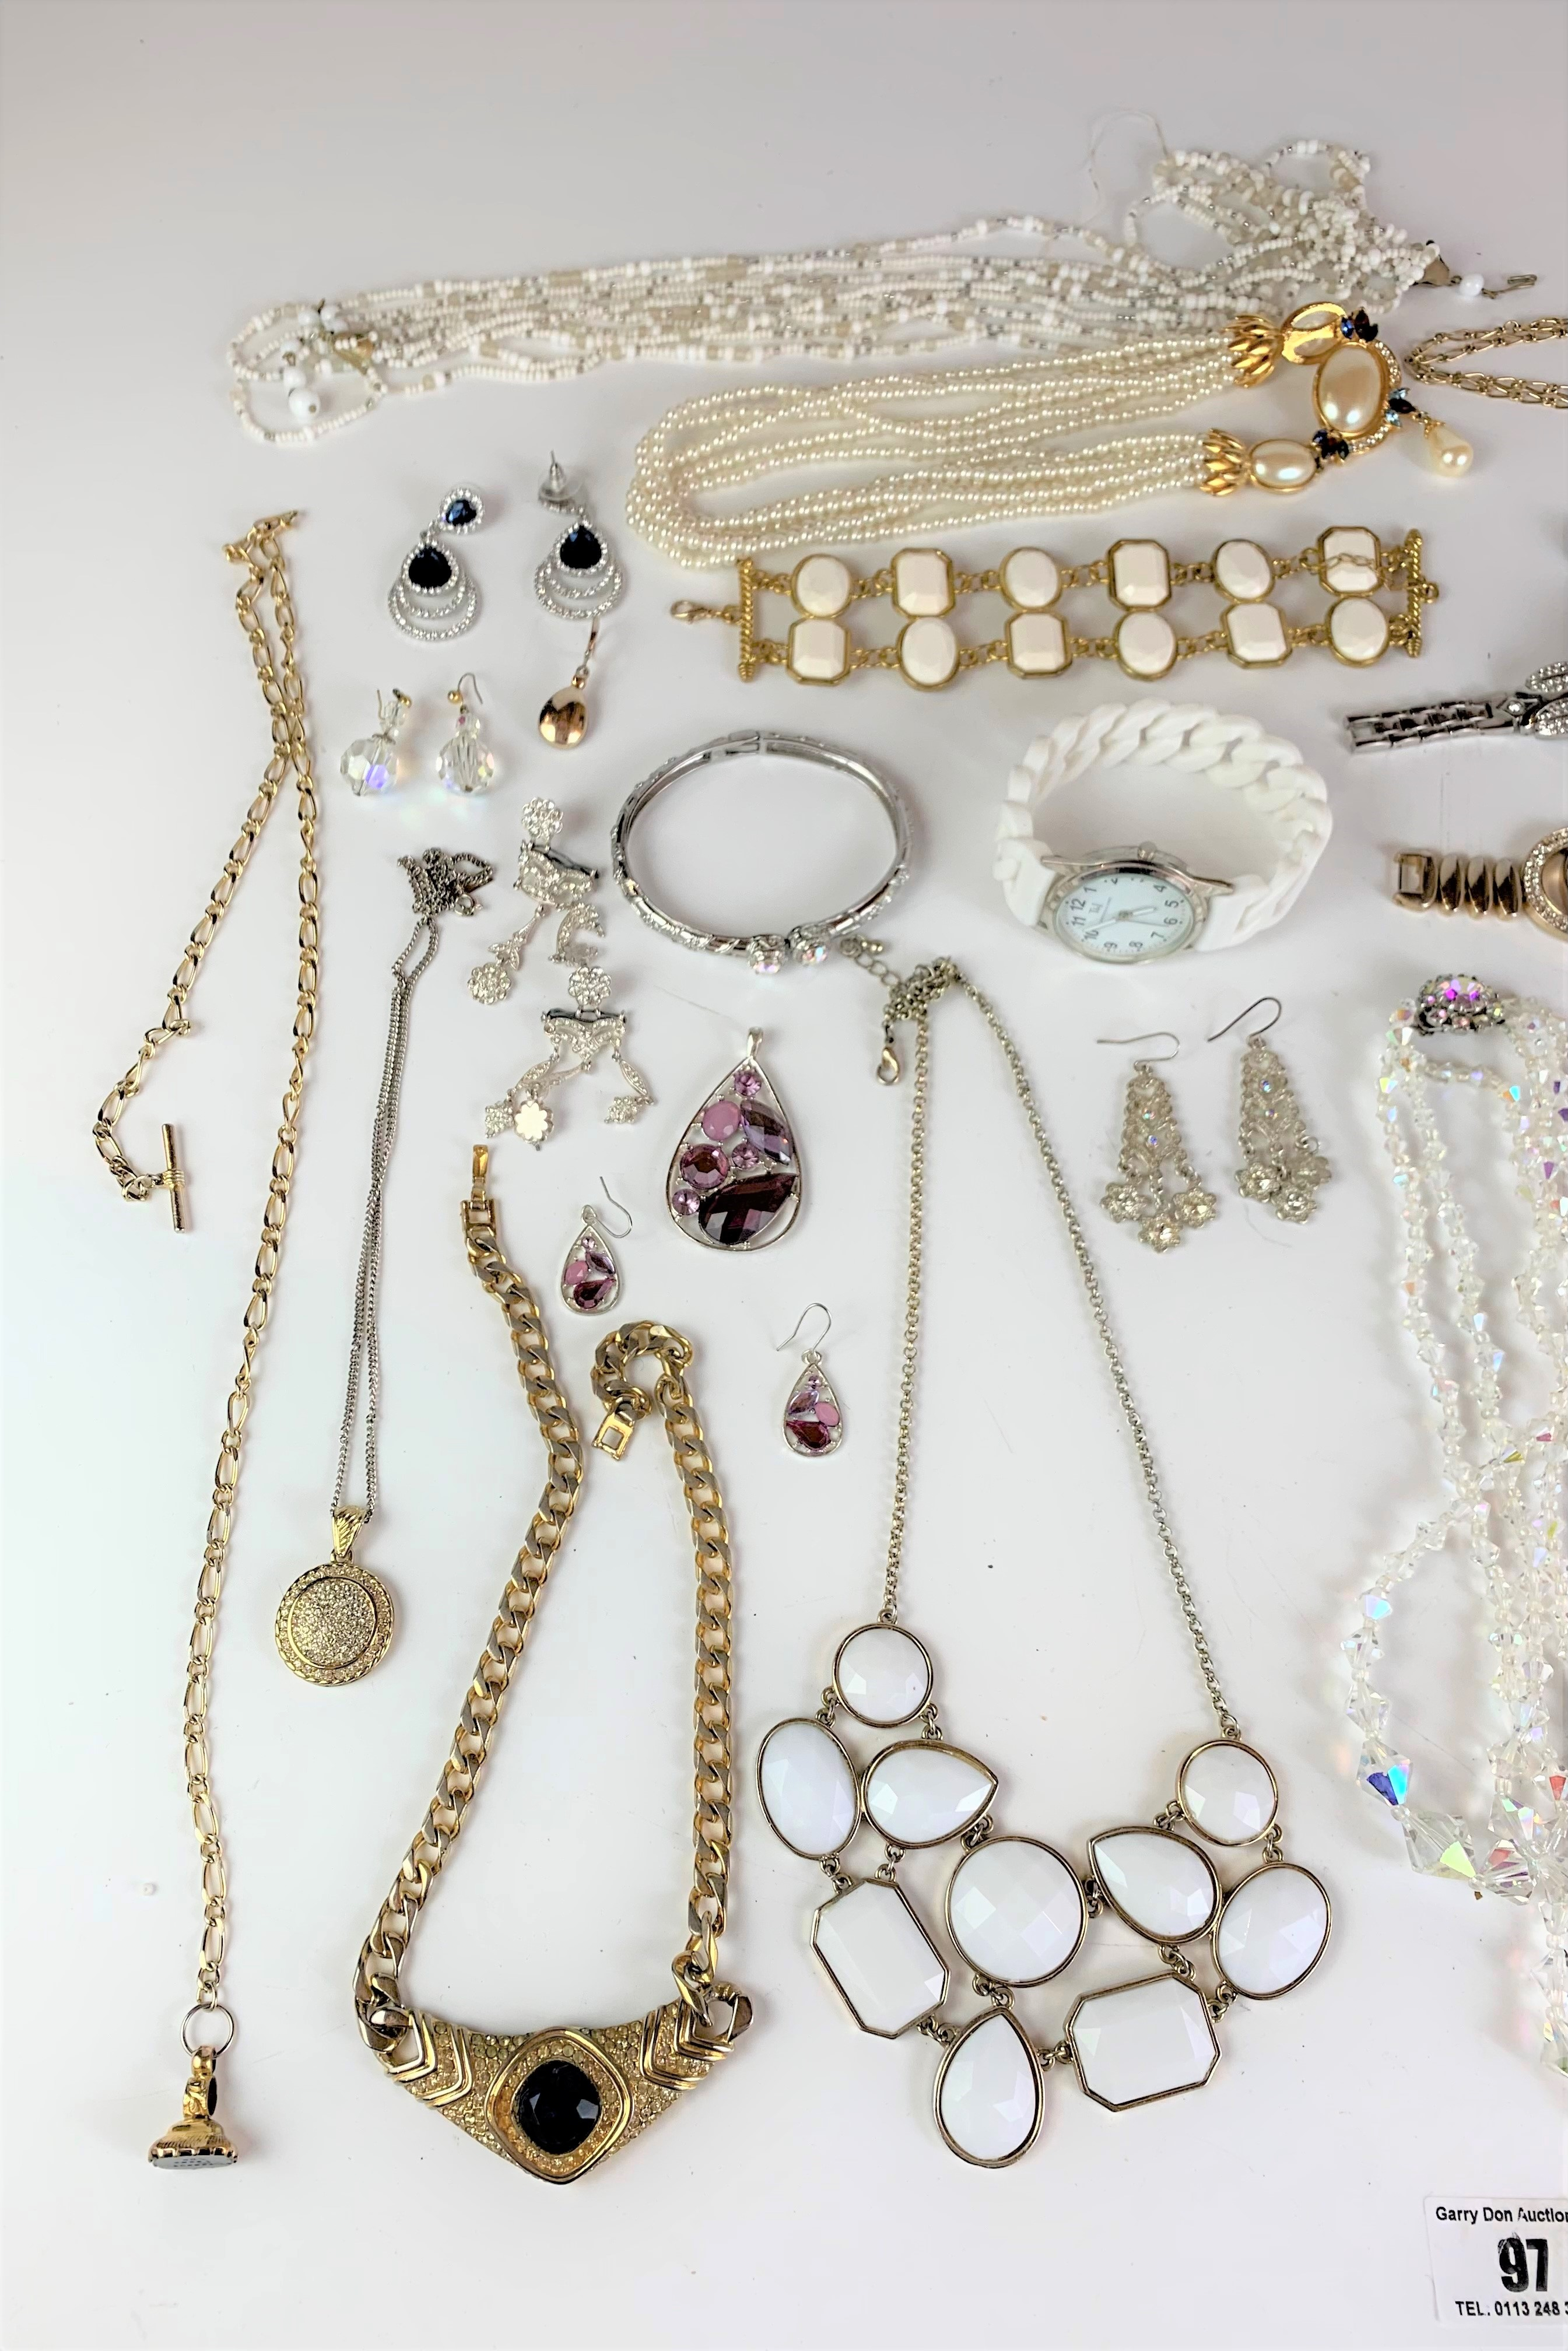 Large bag of assorted dress jewellery including necklaces, bracelets, earrings, etc. - Image 2 of 6